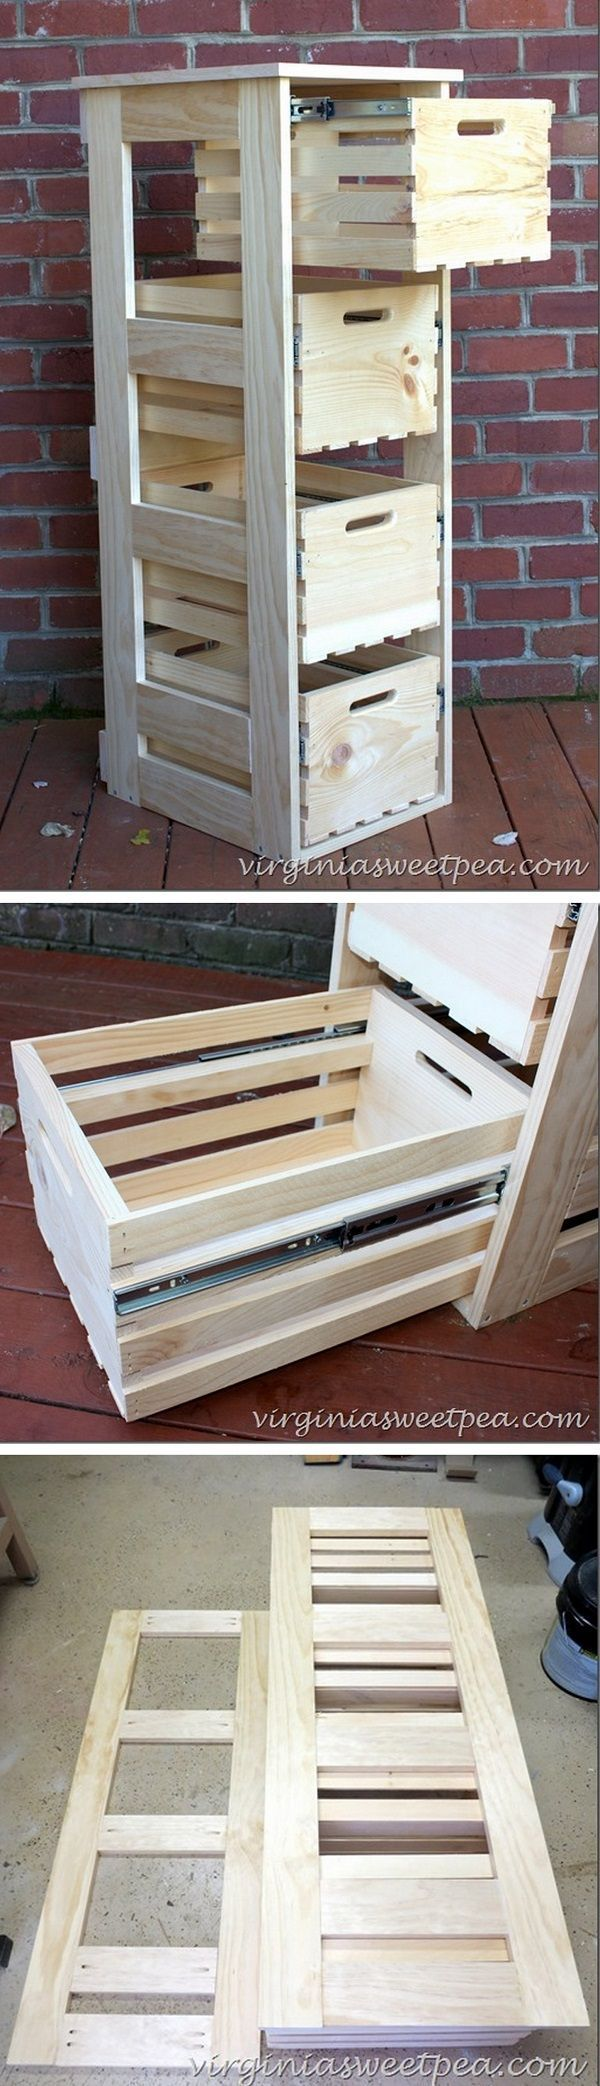 Wooden crates like this to paint.. light gray and disguise bank boxes of paint supplies.... storage options for paint supplies